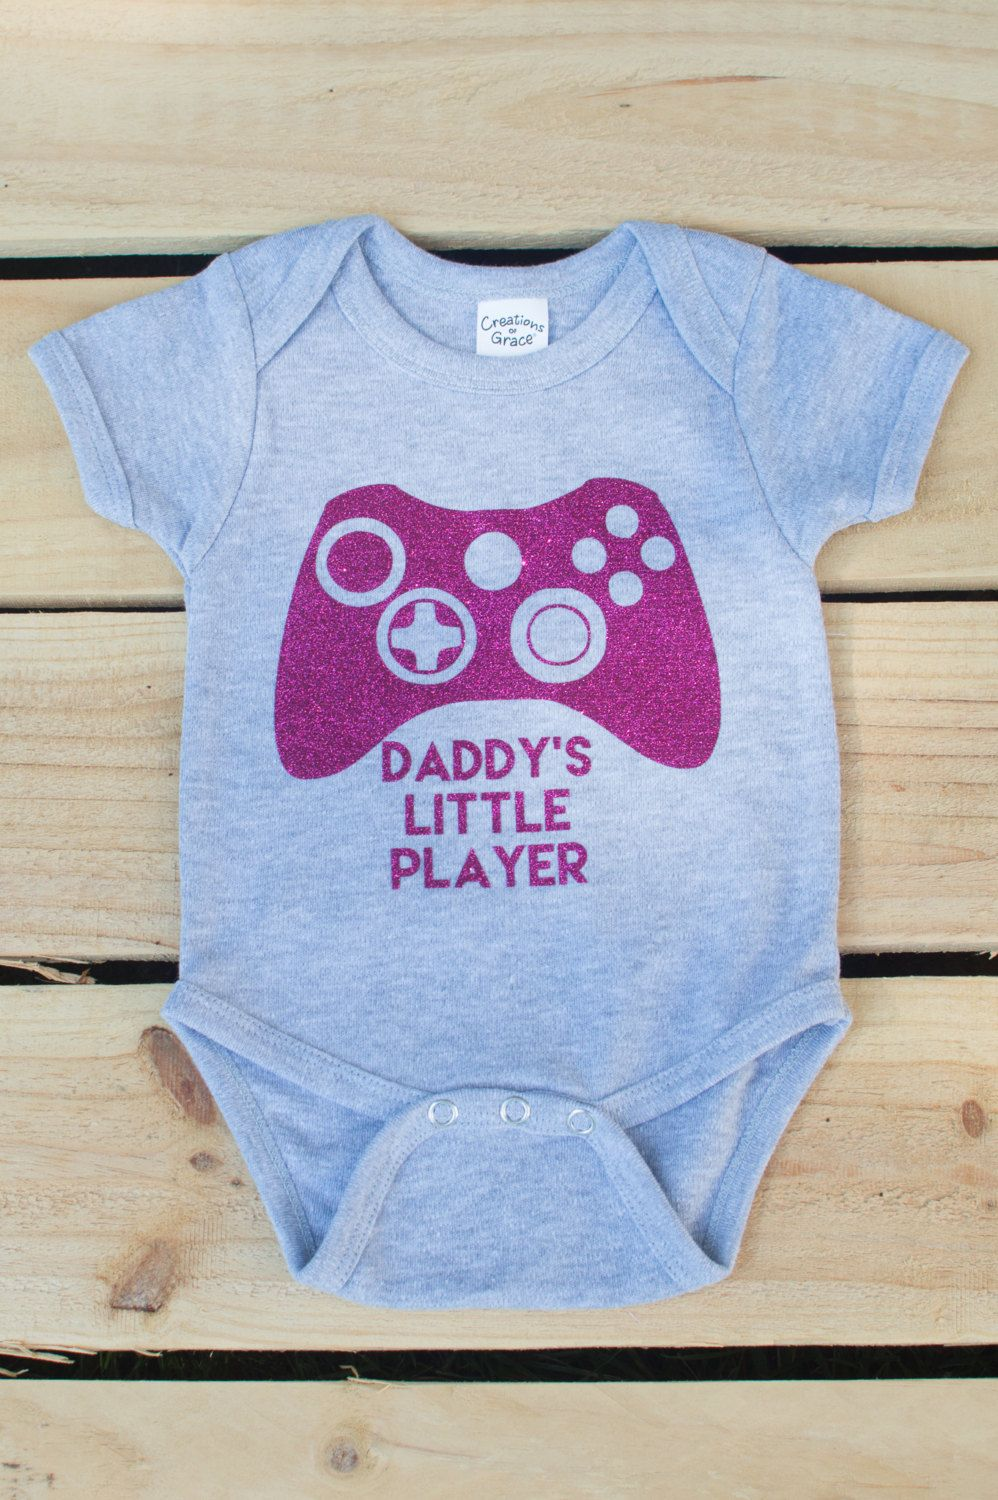 23d81f00f Daddys Little Player Coming Home Outfit Gamer Shirt Daddy and Me Shirt  Daddy Daughter Shirt Matching Shirts Family Shirt by MirrorMeFashion on Etsy